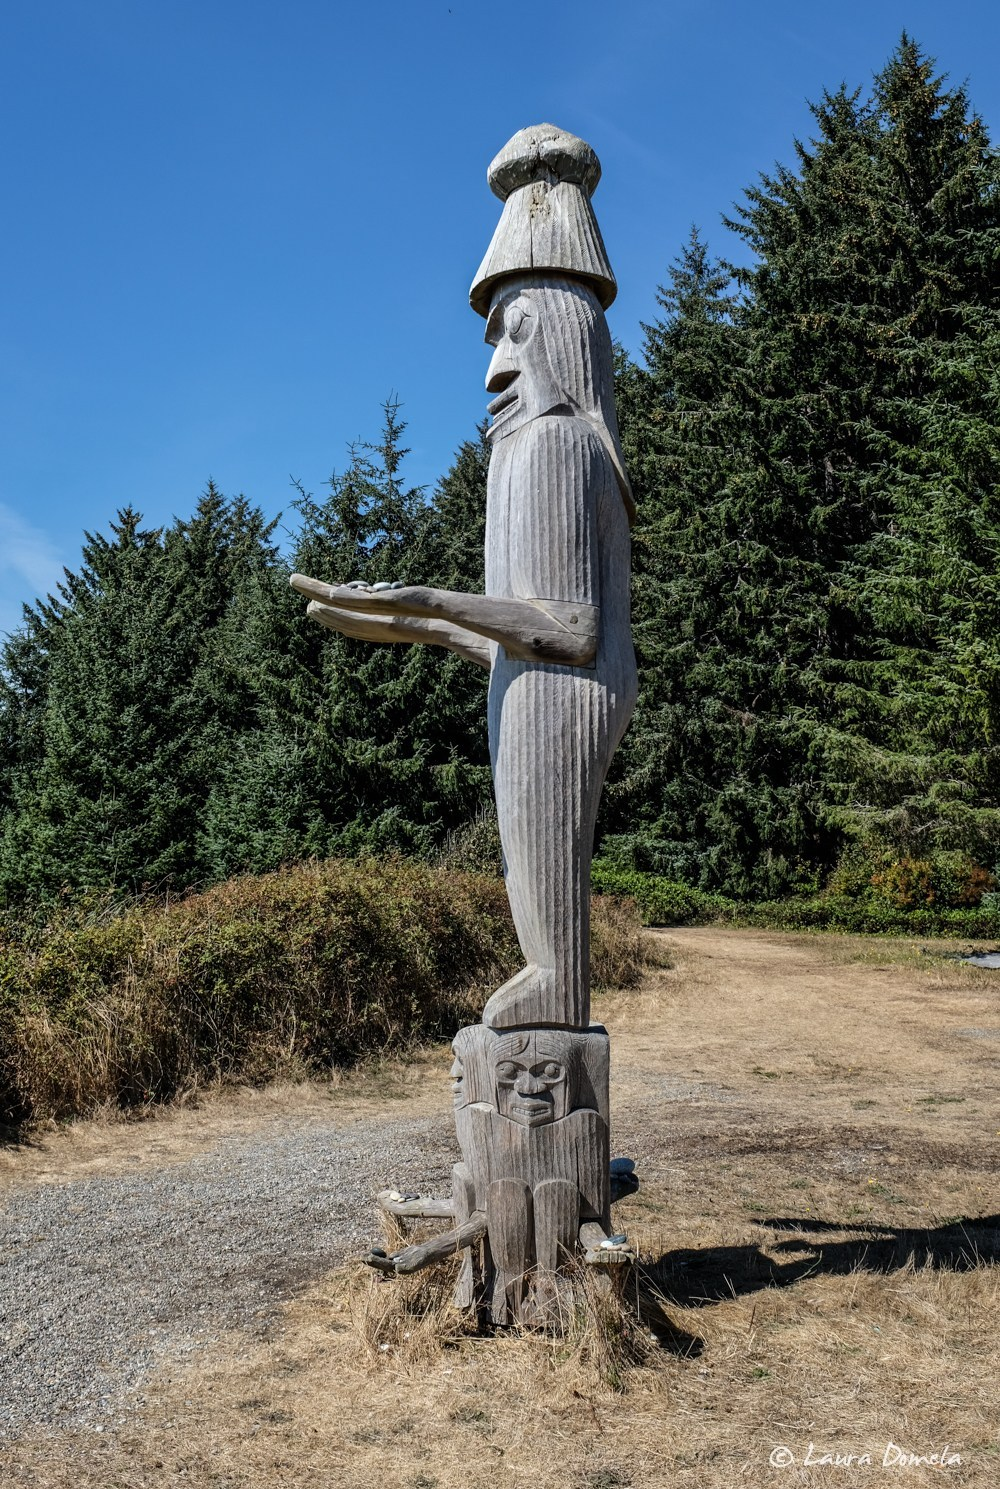 Welcoming Totem, carved by Sanford Williams